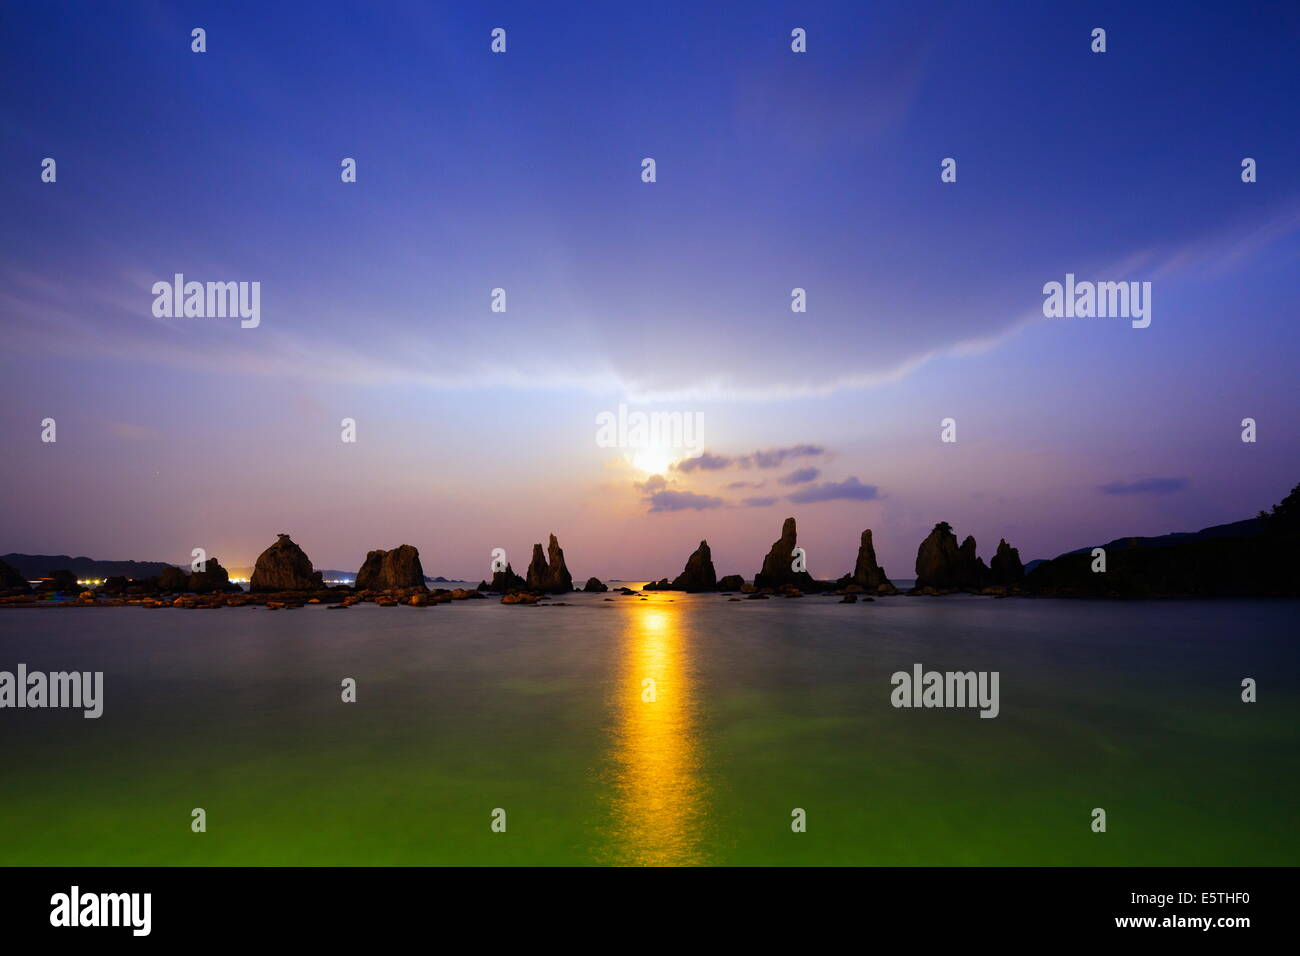 Full moon rising over rock stacks, Hashikuiiwa, Wakayama Prefecture, Honshu, Japan, Asia - Stock Image